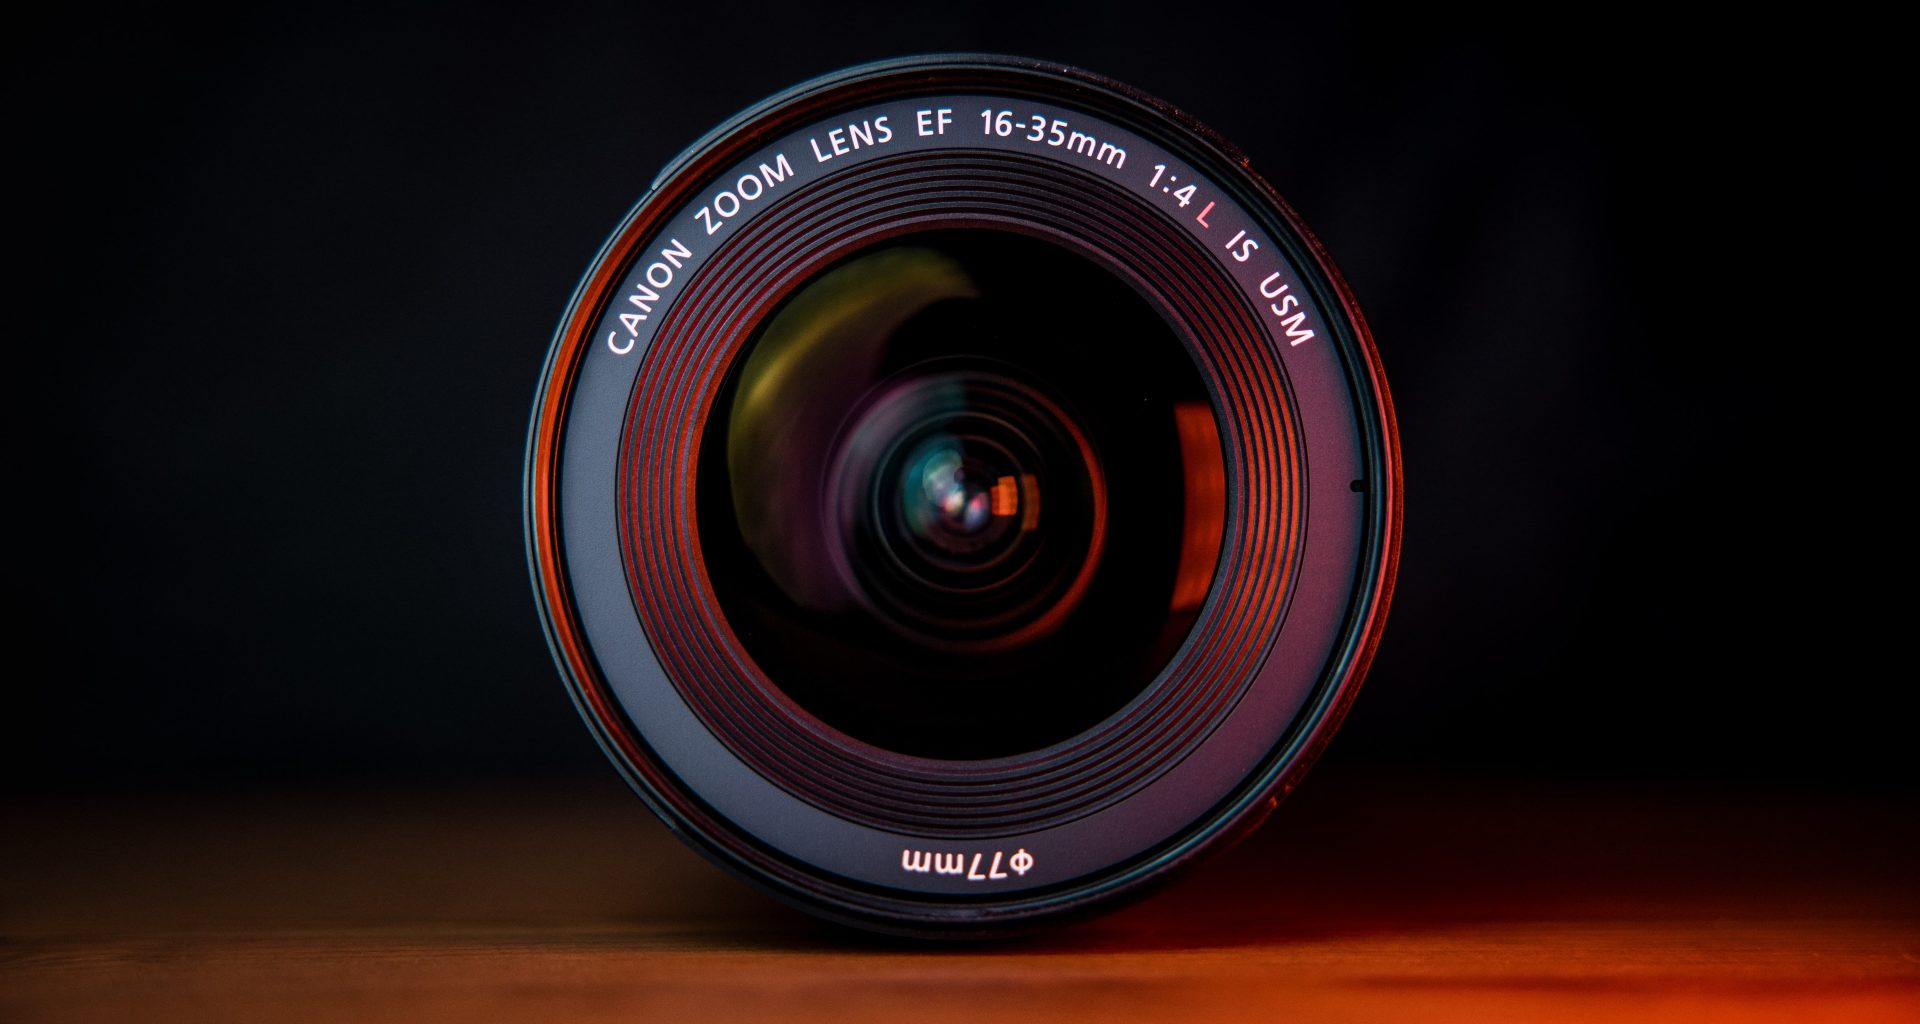 close up picture of a camera lens